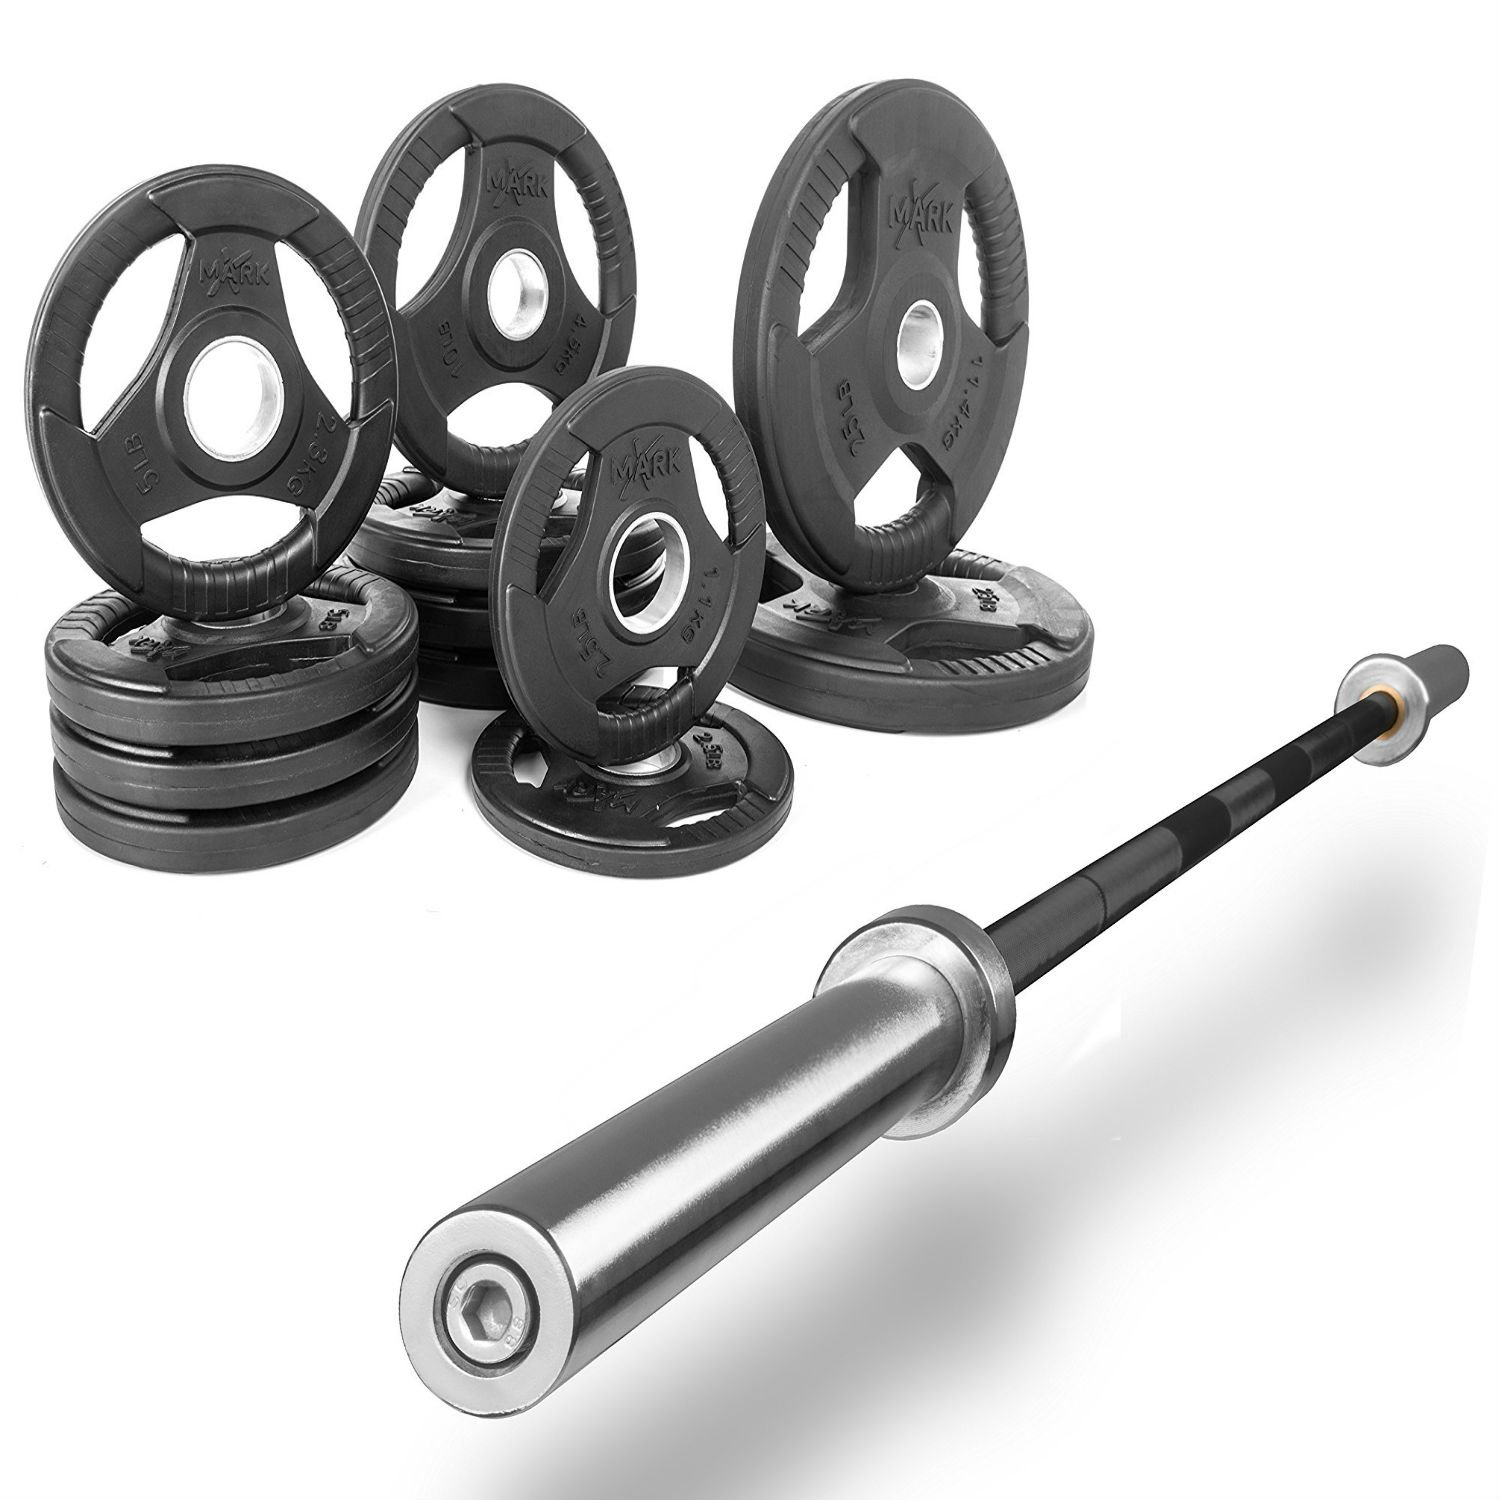 XMark Fitness Combo offer 7 ft. Olympic Excercise Bar With Premium Quality Rubber Coated Tri-grip Olympic Plate Weight Package